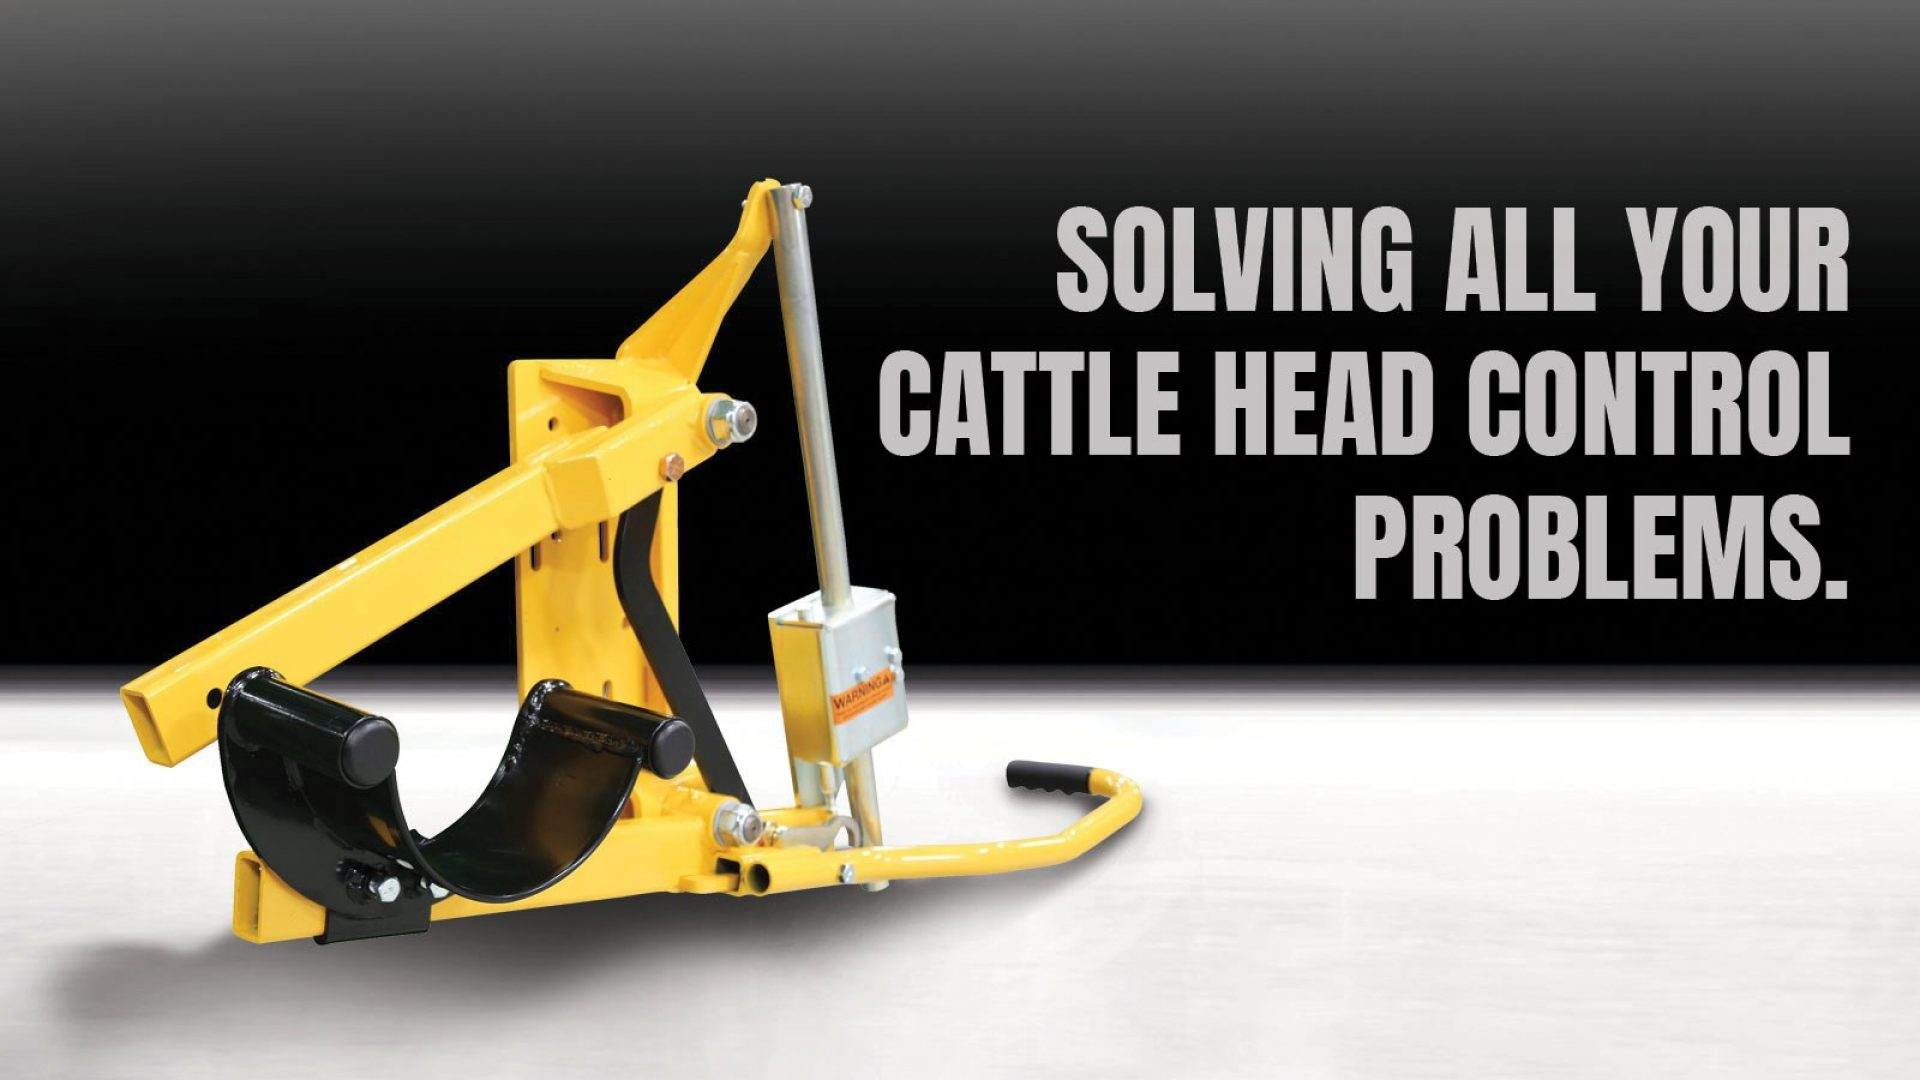 Cattle Head Holder by Arrowquip